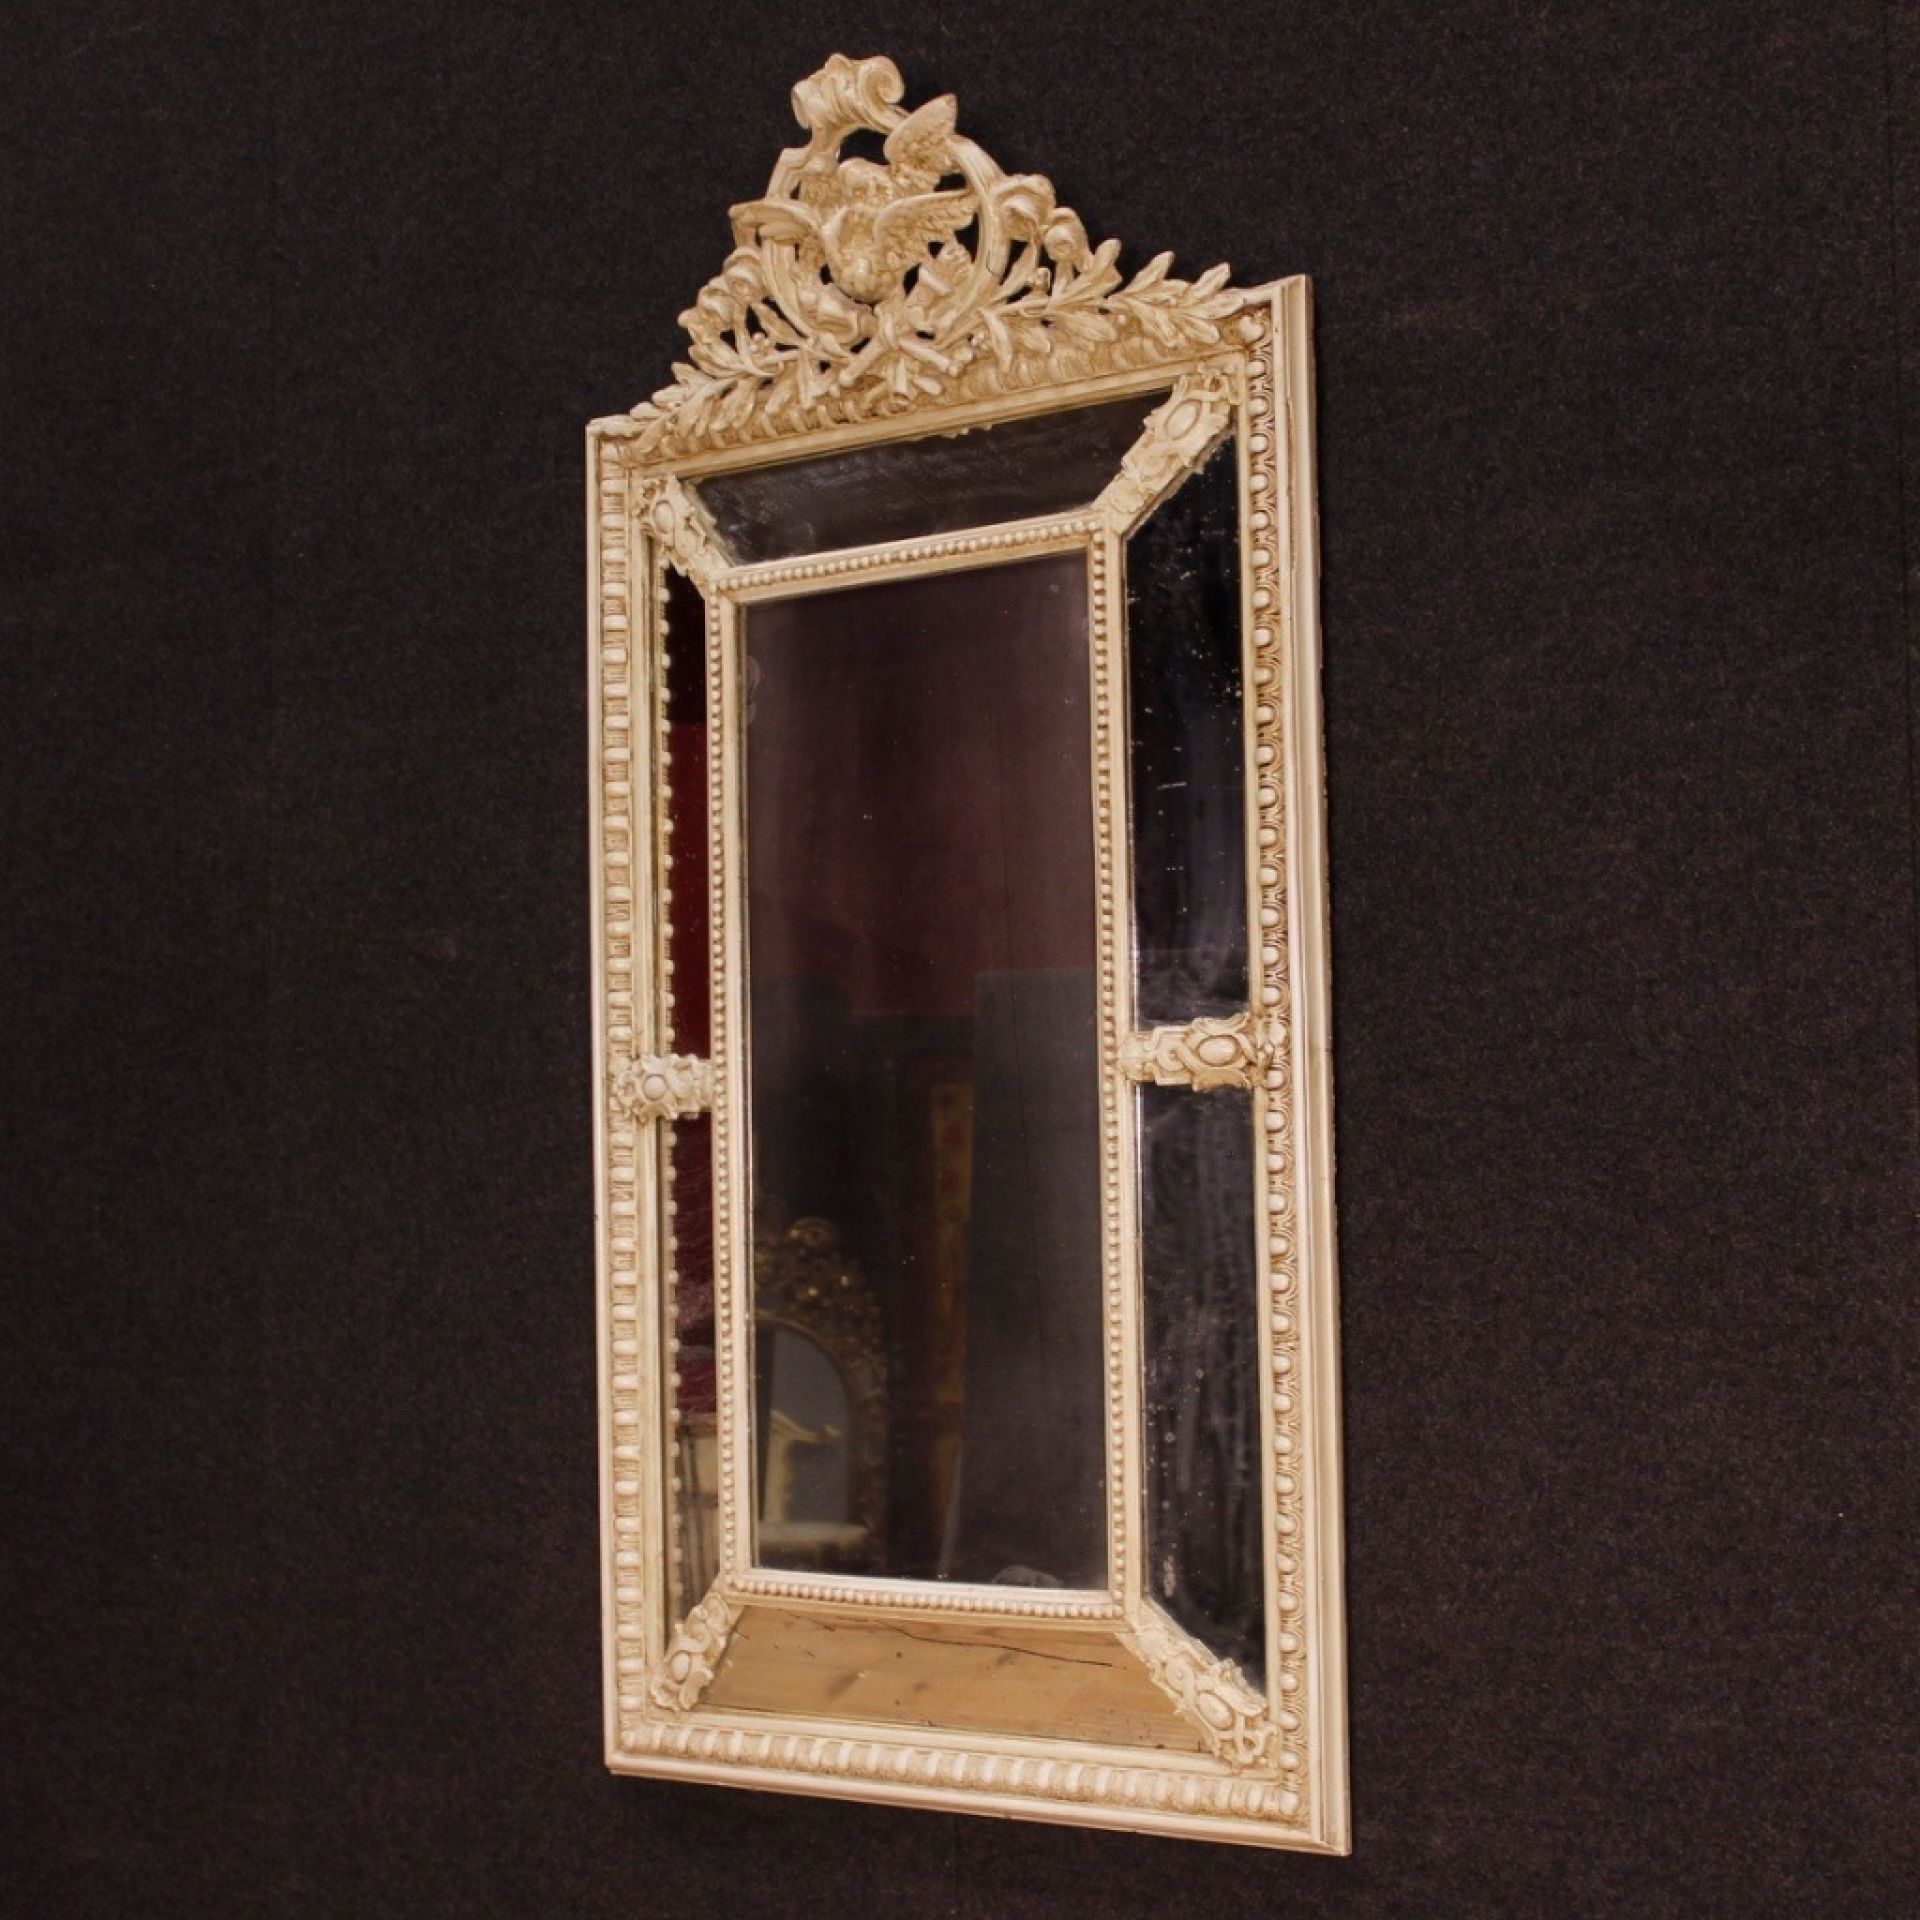 20th Century Painted Wood and Plaster French Mirror, 1930